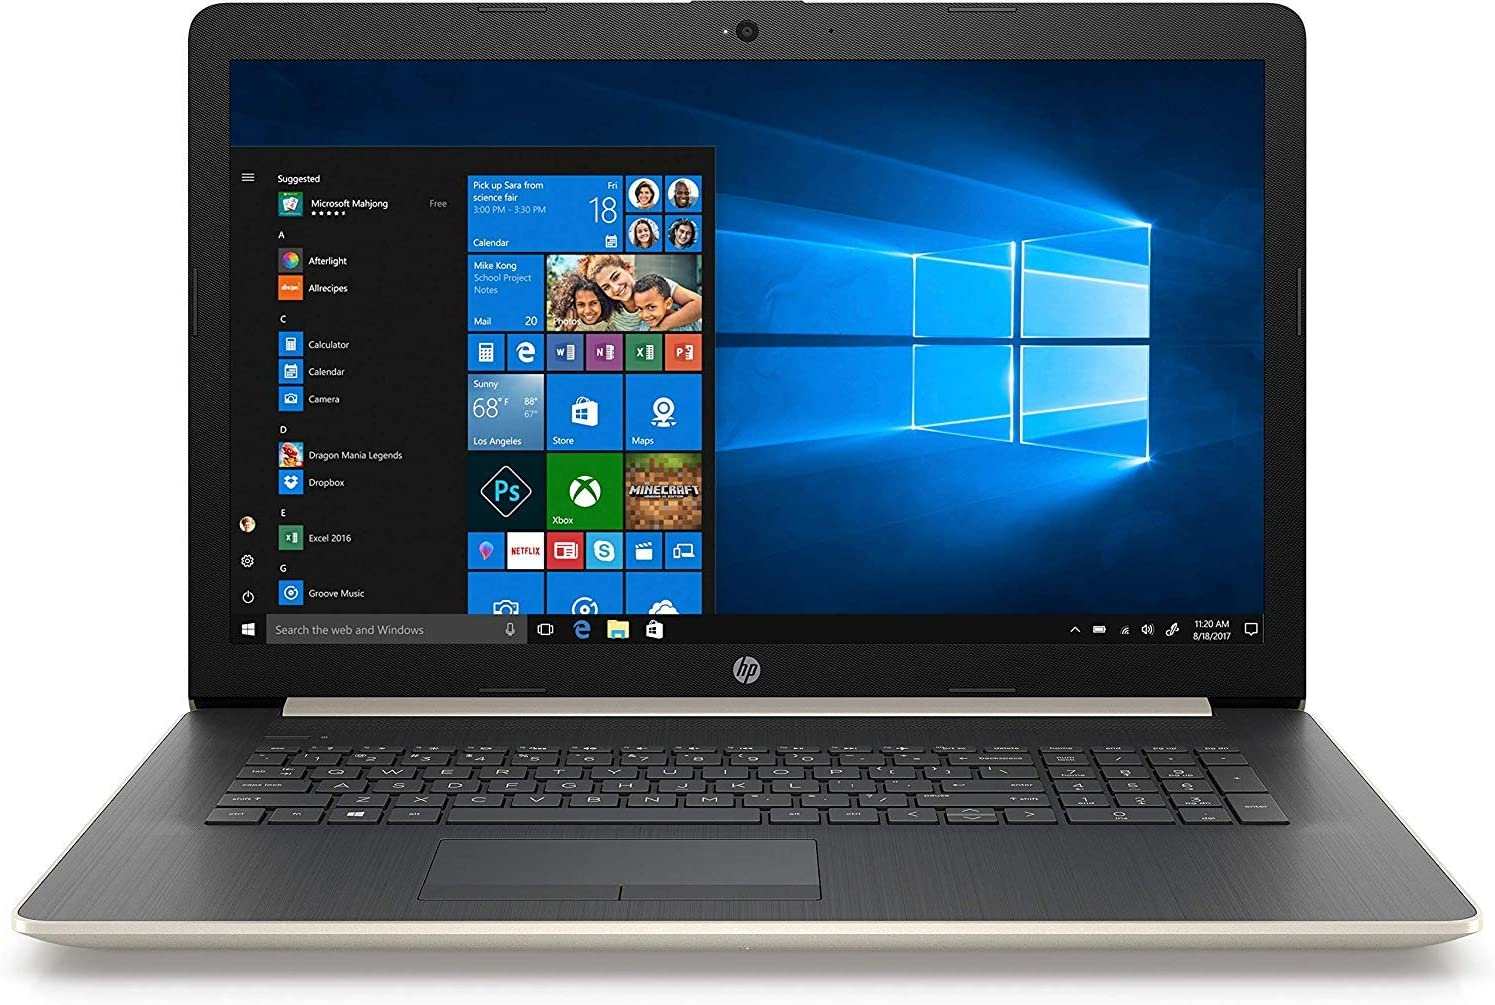 "HP 17.3"" HD+ Notebook Laptop PC, Intel Quad Core i5-8250U Processor, 24GB Memory: 16GB Intel Optane + 8GB RAM, 2TB Hard Drive, Optical Drive, HD Webcam, Backlit Keyboard, Windows 10 (Gold)"